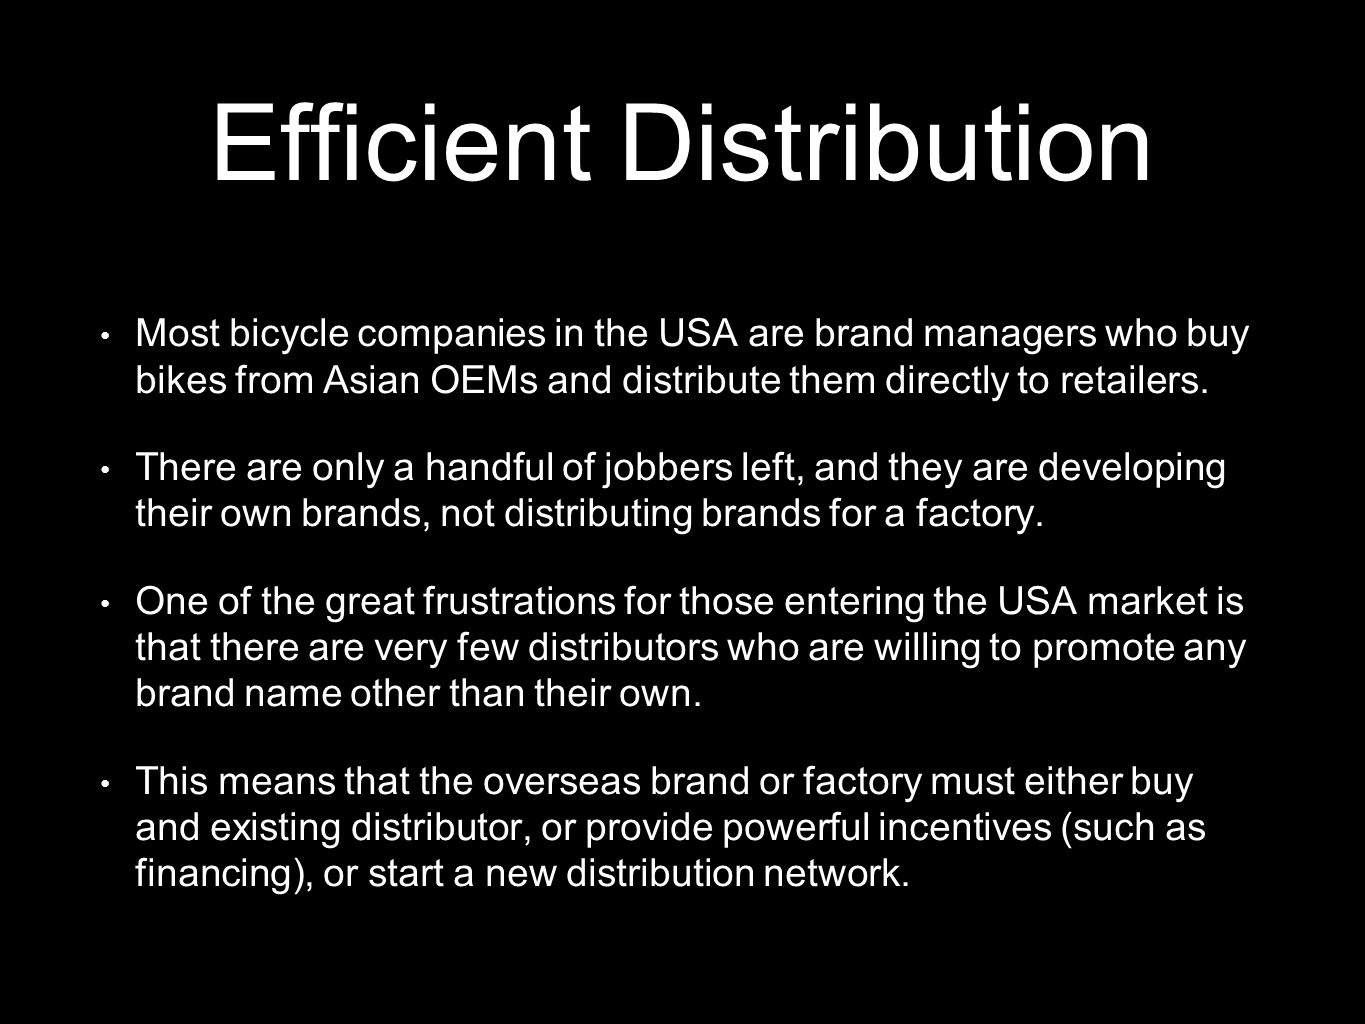 Efficient Distribution Most bicycle companies in the USA are brand managers who buy bikes from Asian OEMs and distribute them directly to retailers.